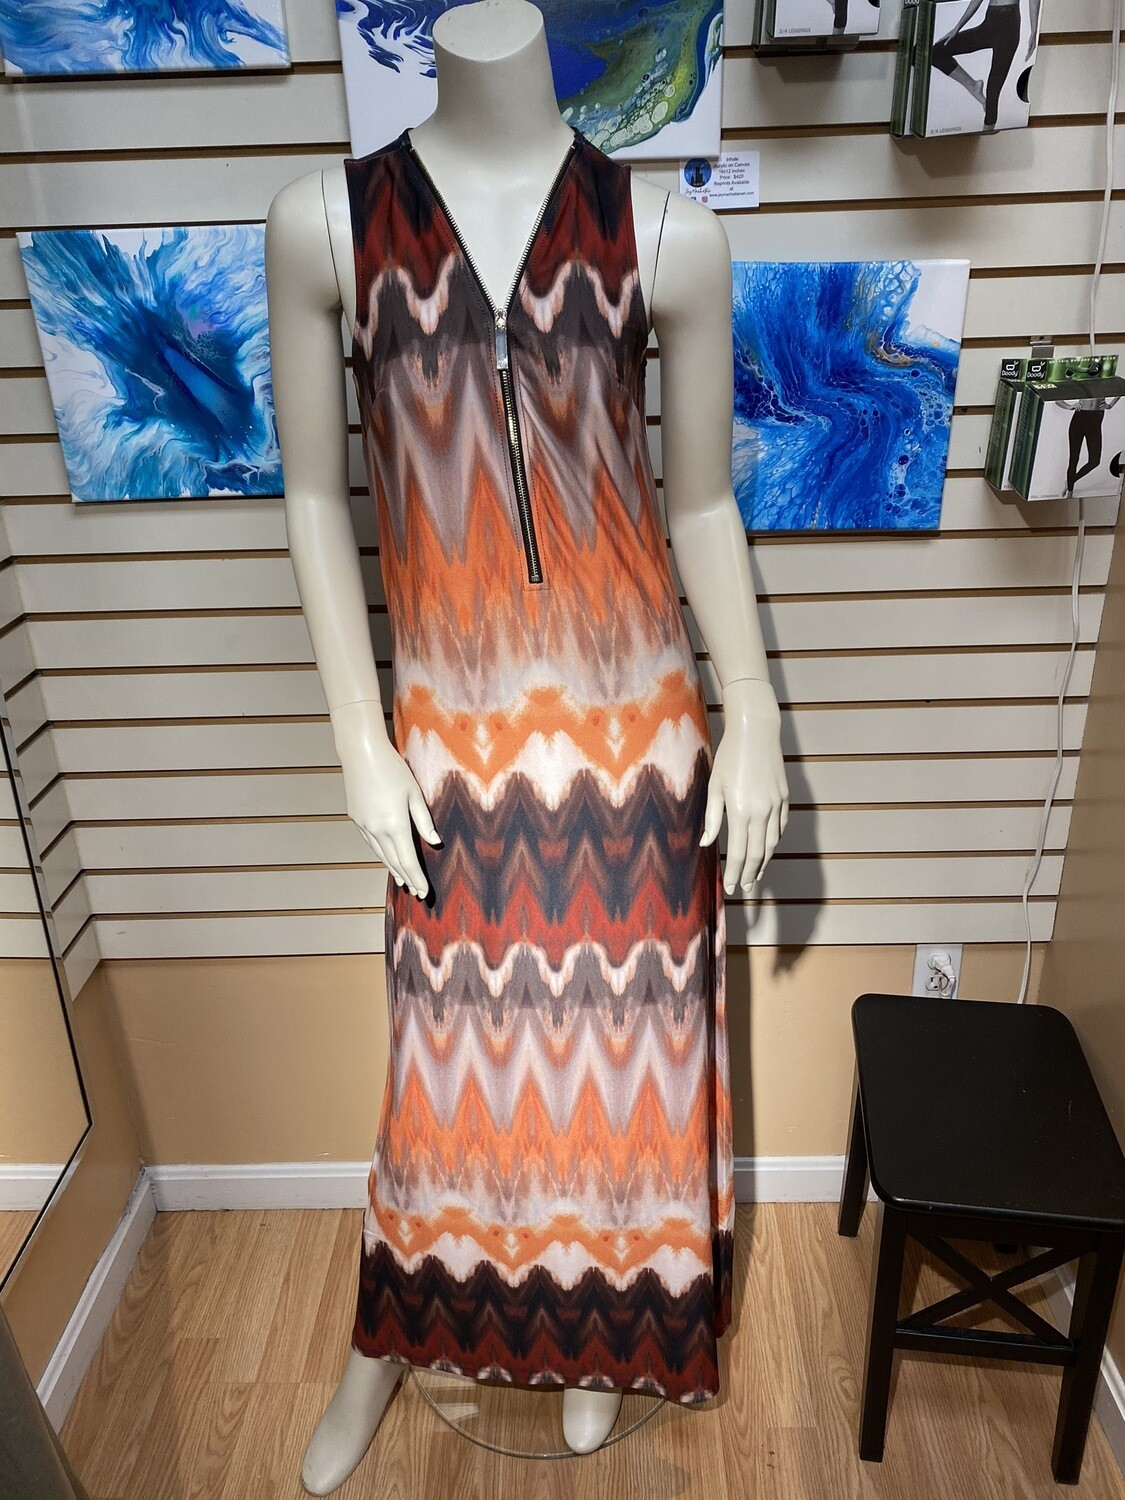 Major Deal Apricot Pyramid Zip Maxi Dress. Multi Color Only In Large